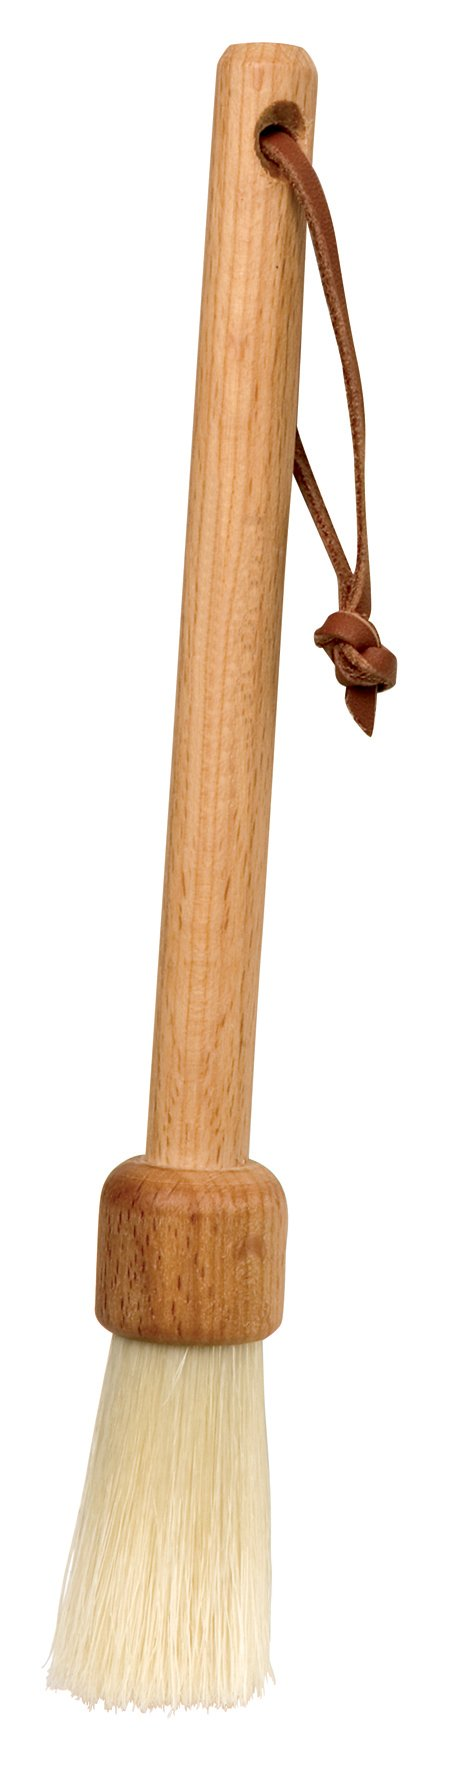 REDECKER Natural Pig Bristle Furniture Dust Brush with Oiled Beechwood Handle, 7-1/2-Inches